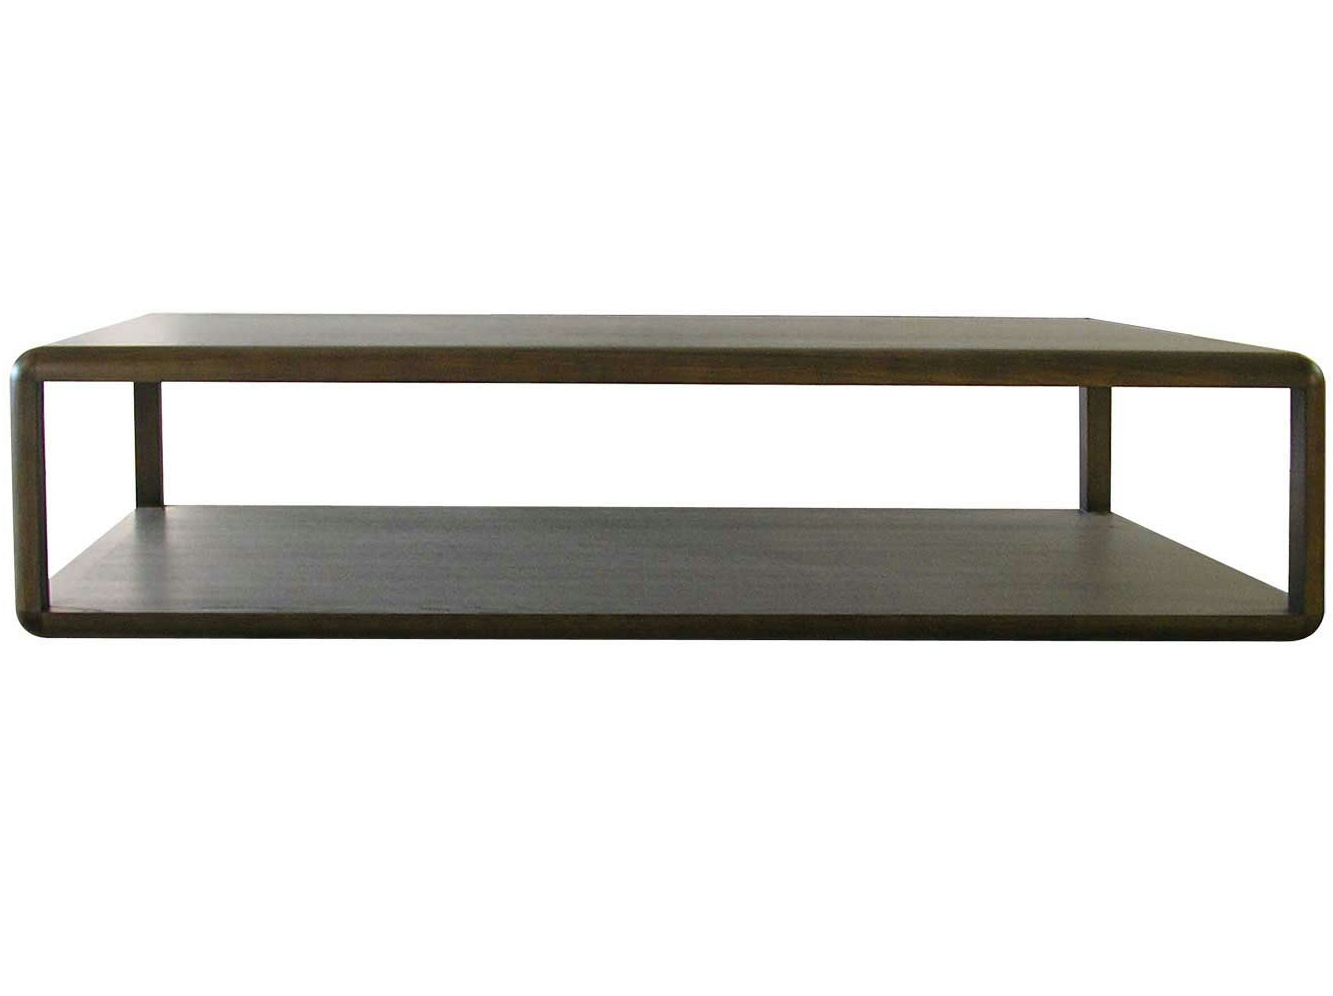 Rive droite table basse by roche bobois design christophe delcourt - Roche bobois table basse ...